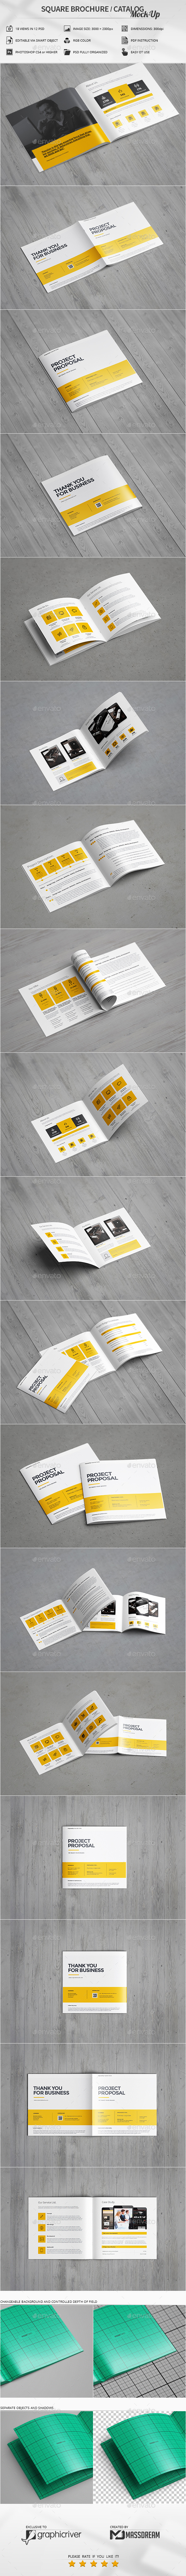 Square Brochure / Catalog Mock-Up - Magazines Print